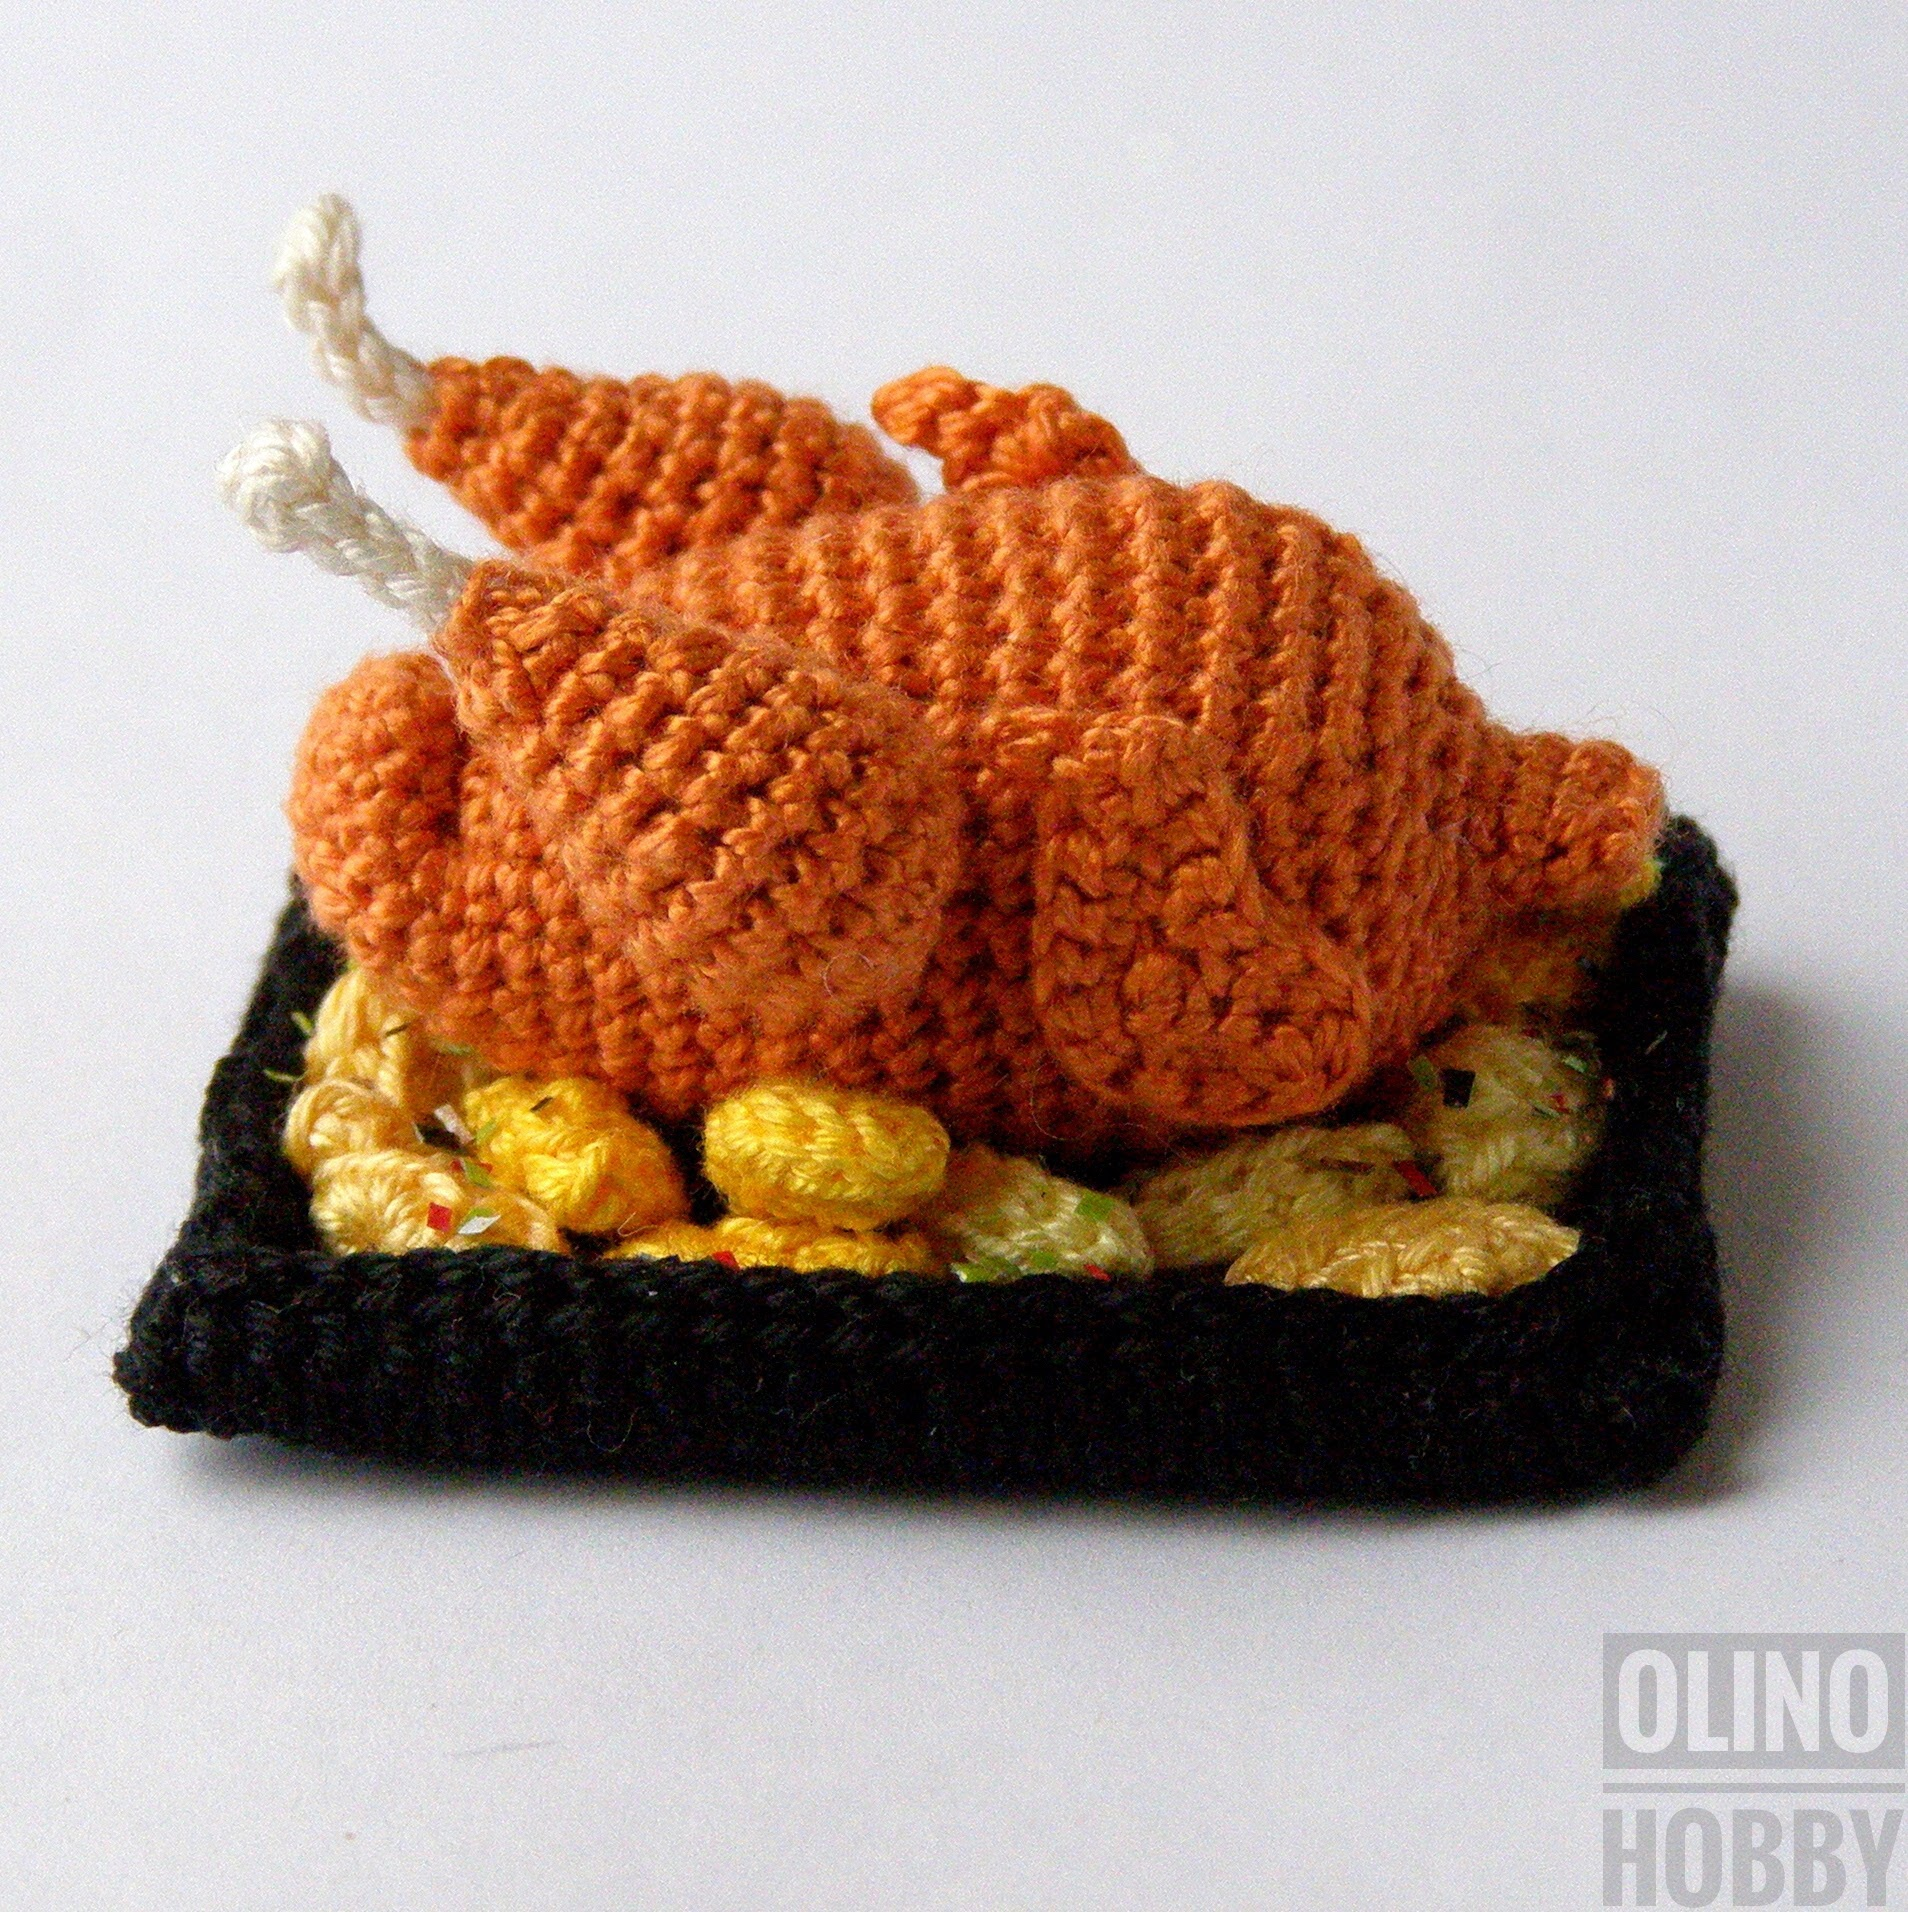 Roasted Turkey Crochet Pattern $4.99